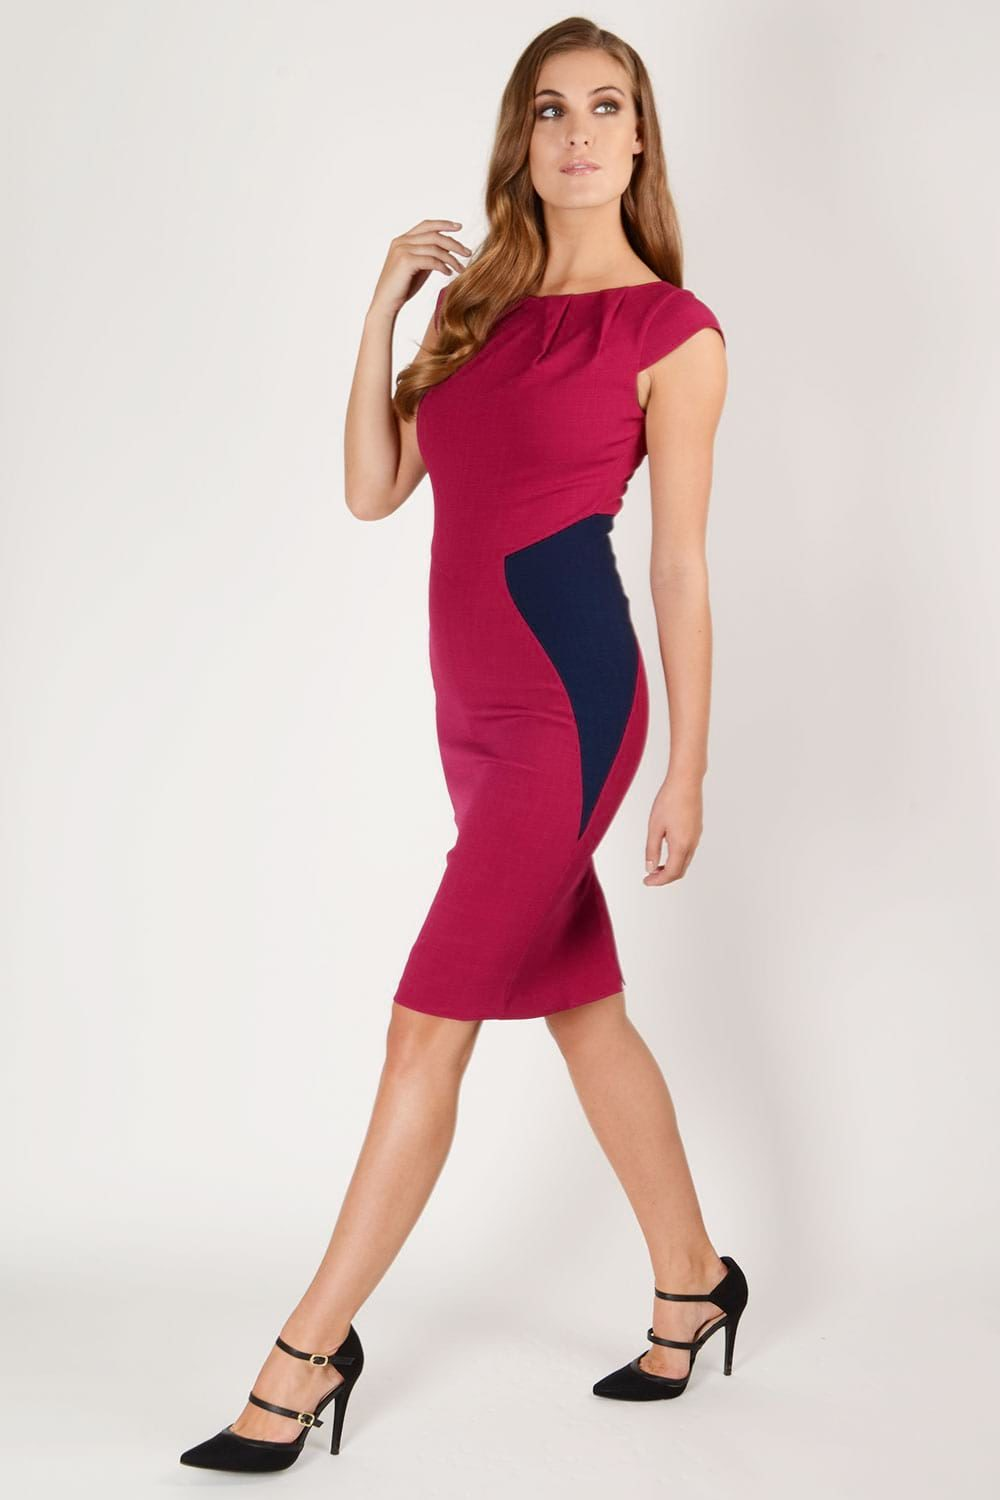 Hybrid Fashion 1246 Annabelle Pencil Dress